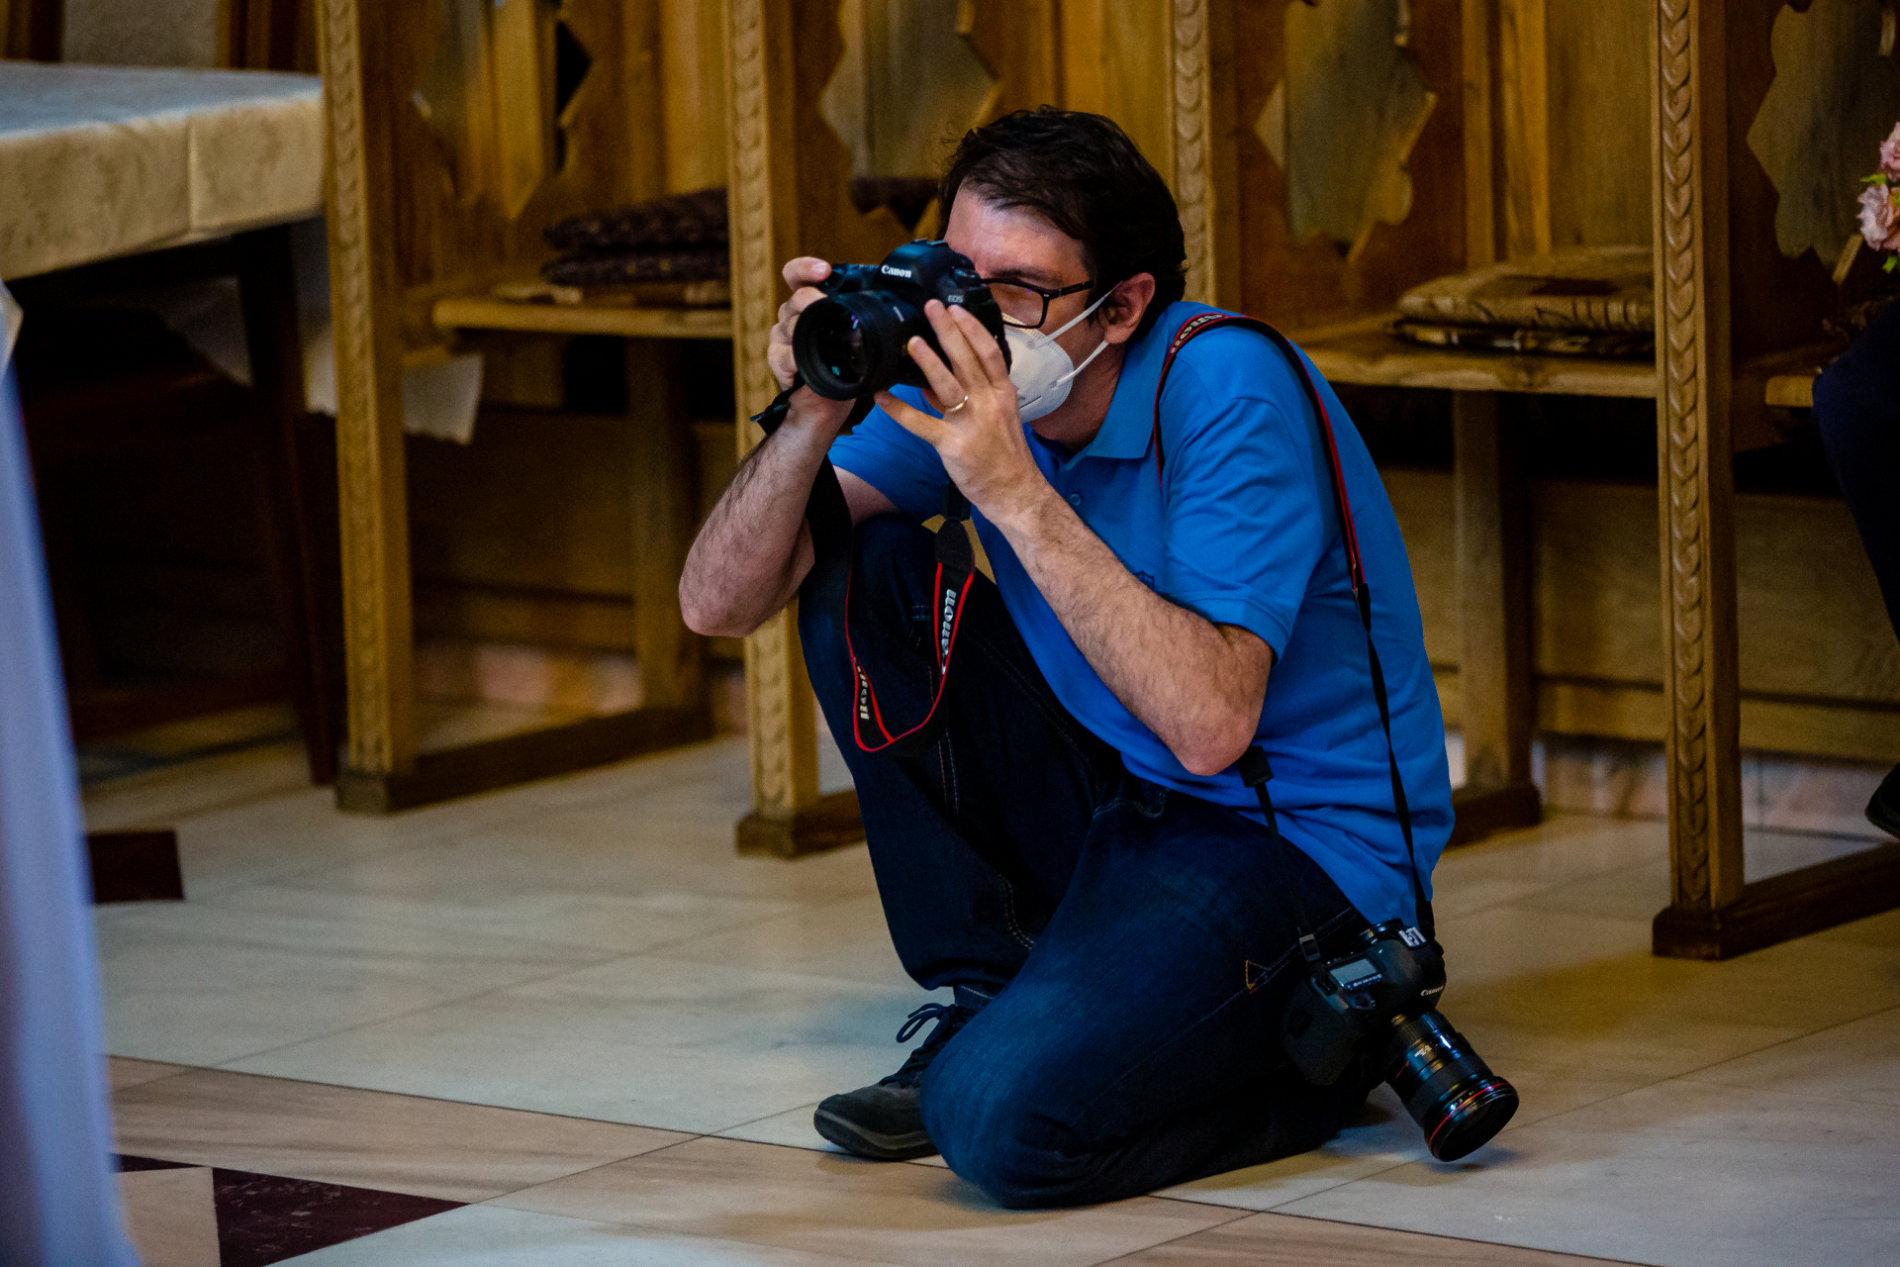 Bucharest, Romania wedding photographer working at a COVID event